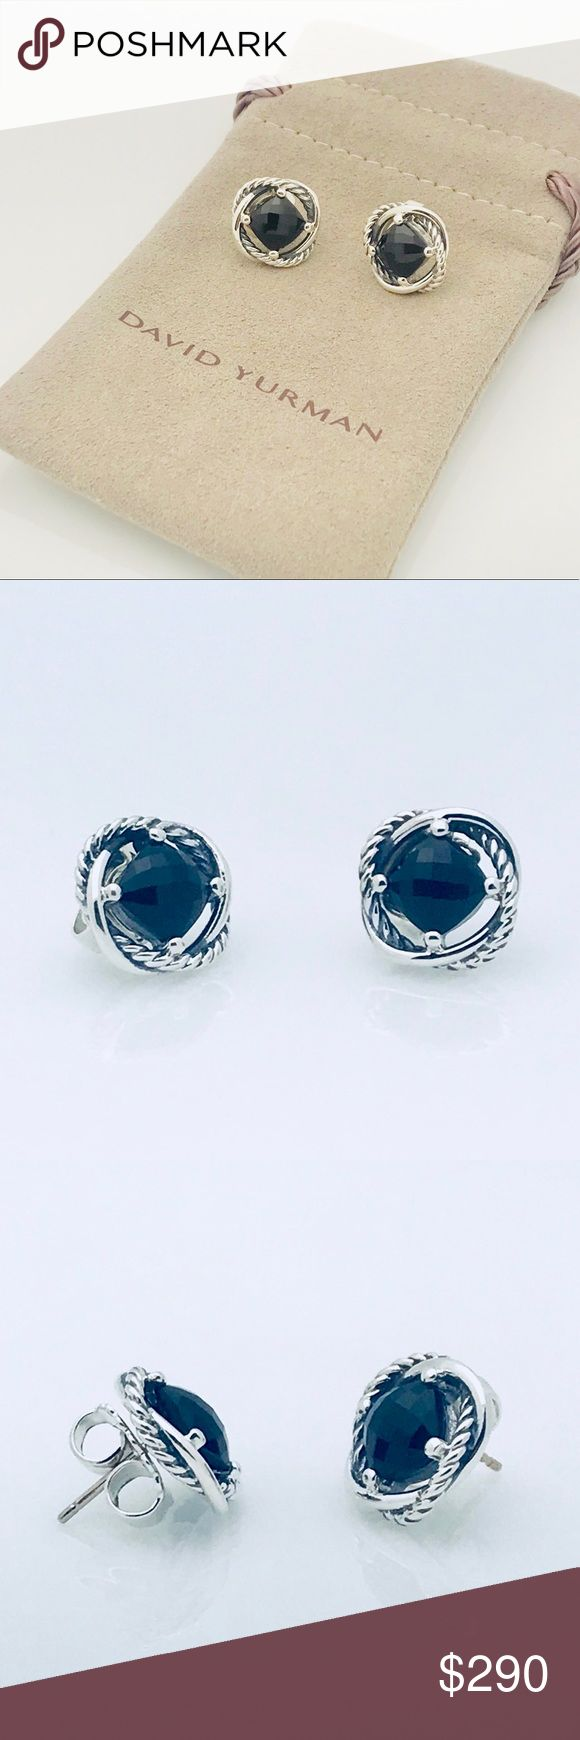 David Yurman Black Onyx Silver Infinity Earrings Beautiful, Elegant Piece 100% Authentic Beautiful Gift For Anyone Fast and Safe Shipping Very Hard to Find Incredible Price Trusted Seller 7 x 7 mm Comes with Pouch David Yurman Jewelry Earrings